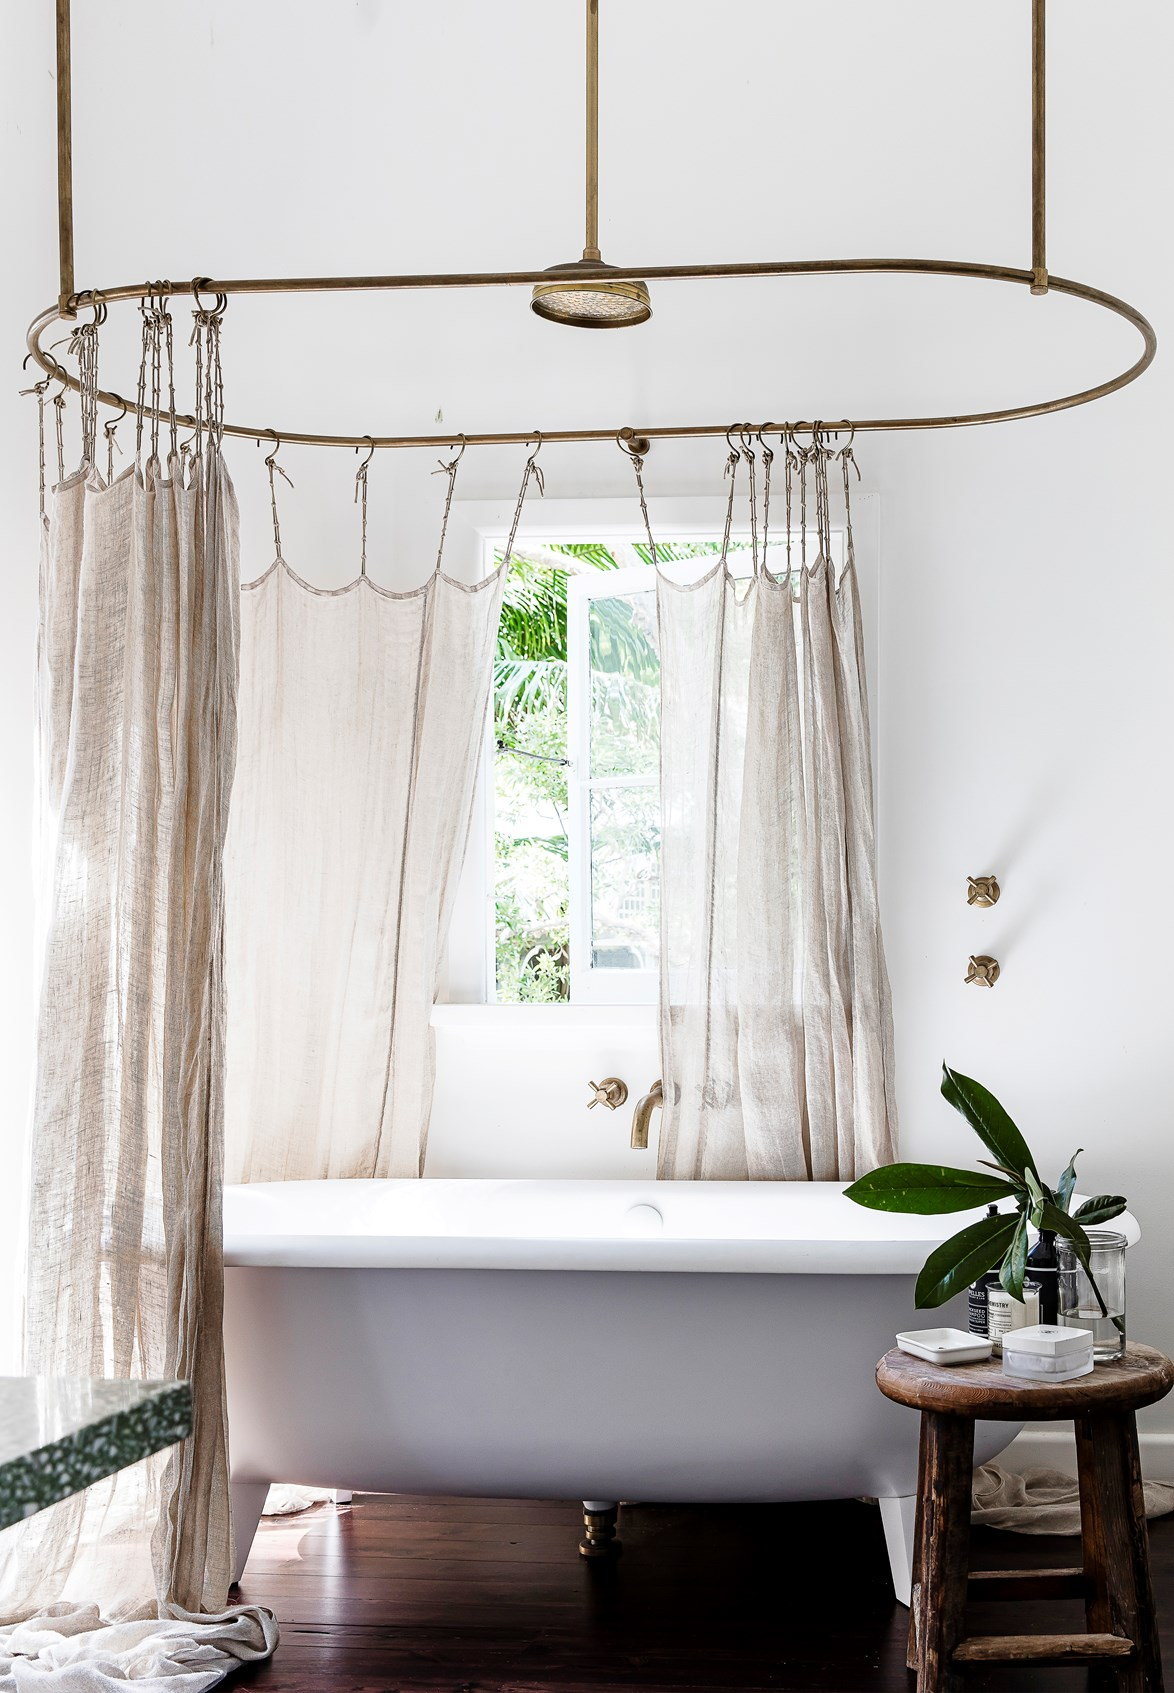 "This freestanding bath tub shows that shower curtains can be more dreamy than daggy when styled correctly. Take cues from this [renovated beach shack in Pittwater](https://www.homestolove.com.au/pittwater-beach-shack-gets-a-heartfelt-renovation-3064|target=""_blank"").  *Photo: Maree Homer*"